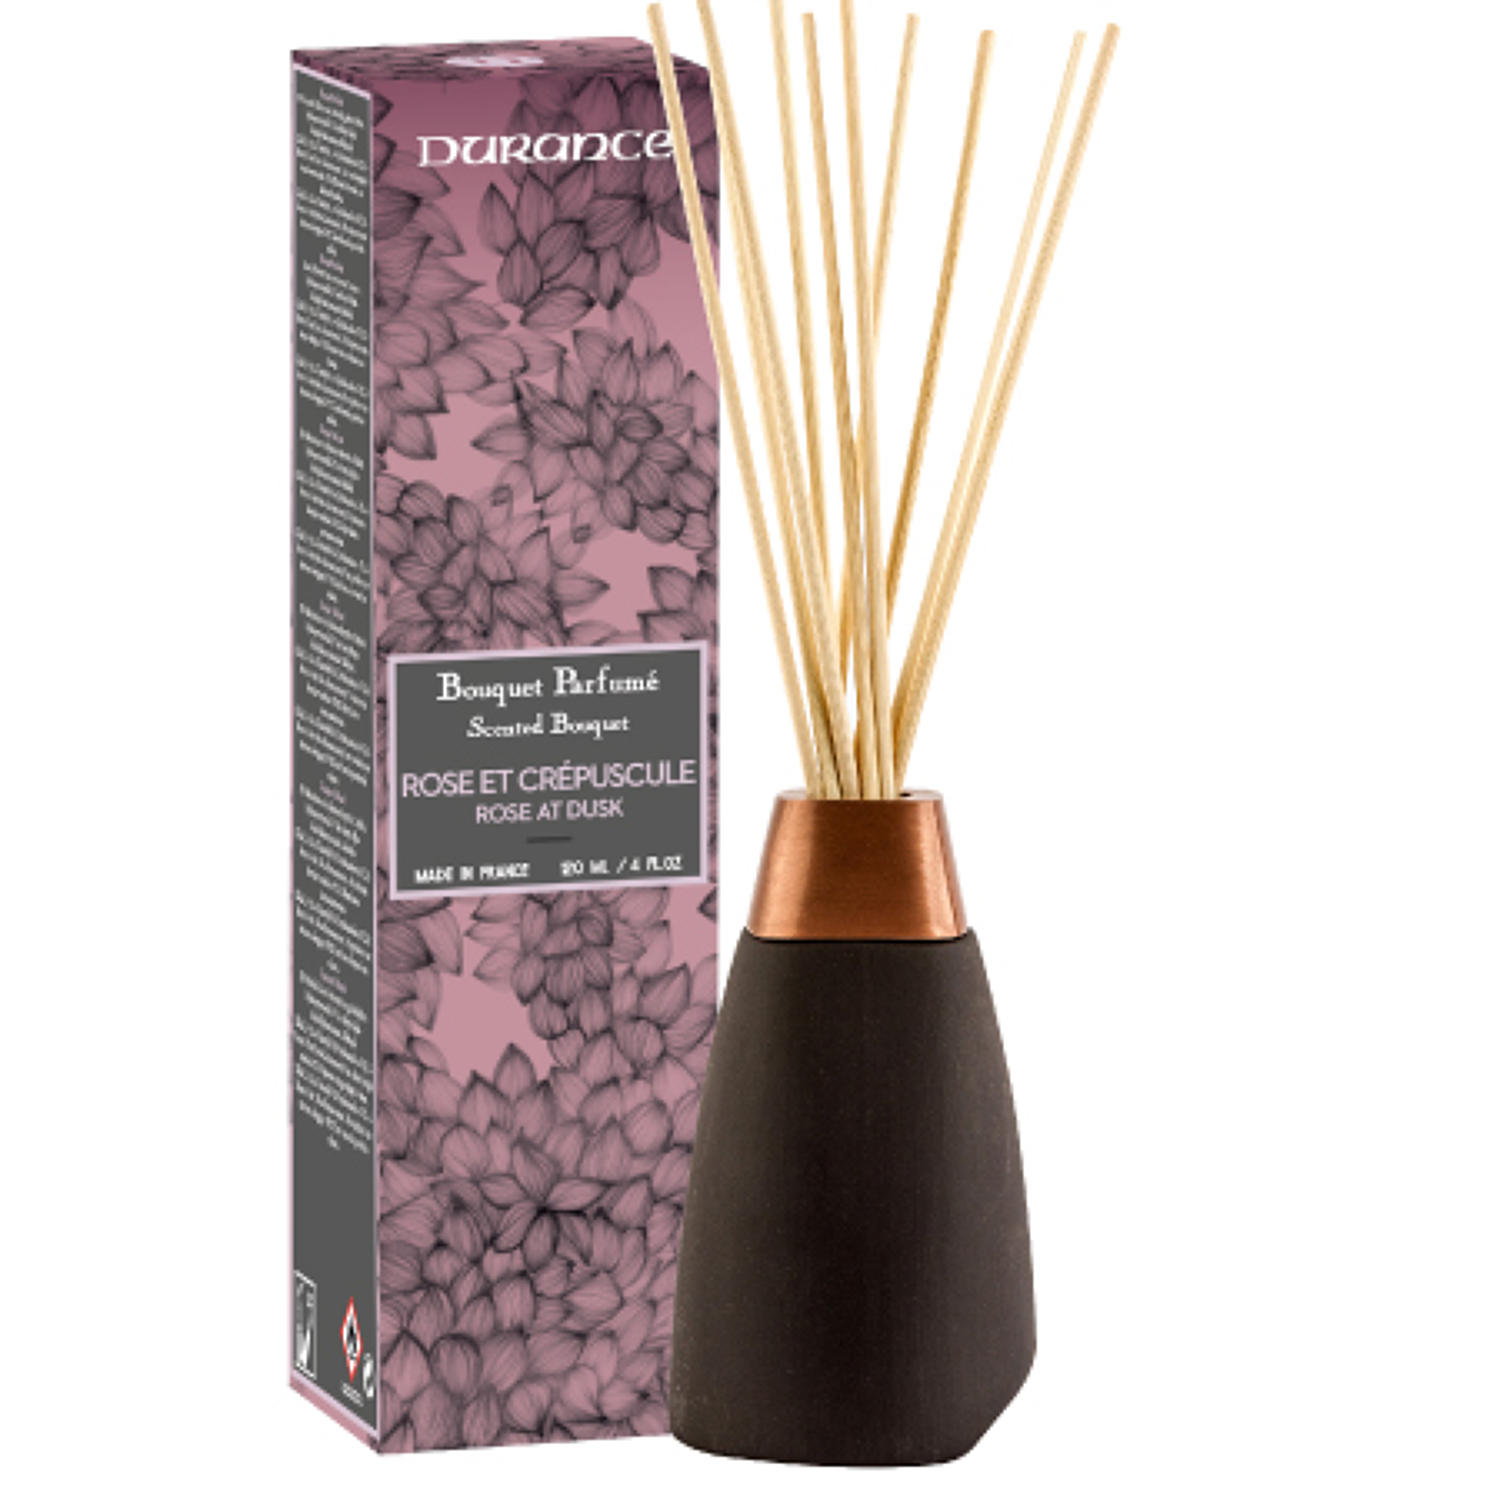 Diffuser - Rose at Dusk 120ml 4 fl.oz